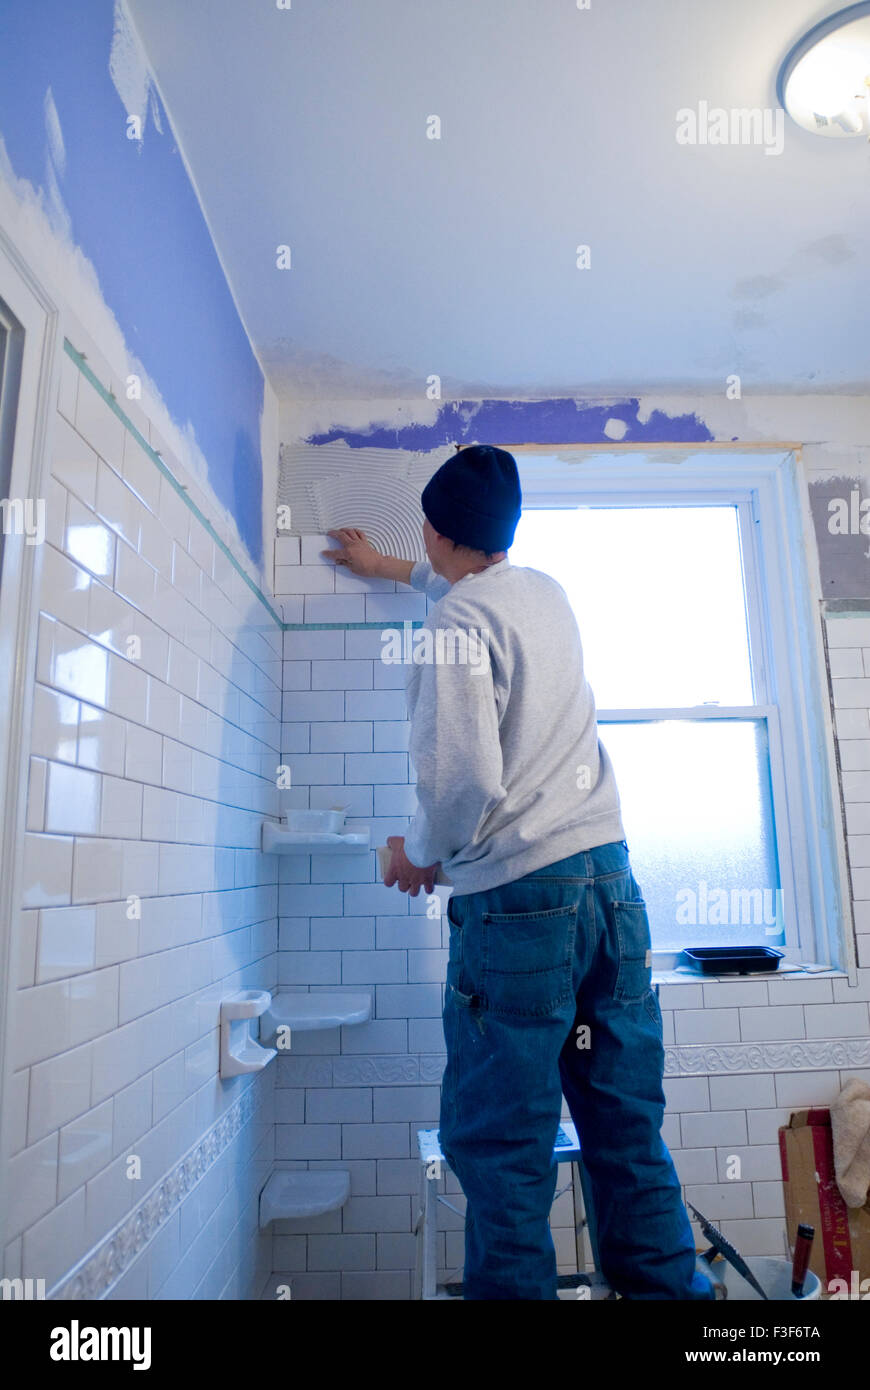 Bathroom Wall Tiles Stock Photos & Bathroom Wall Tiles Stock Images ...